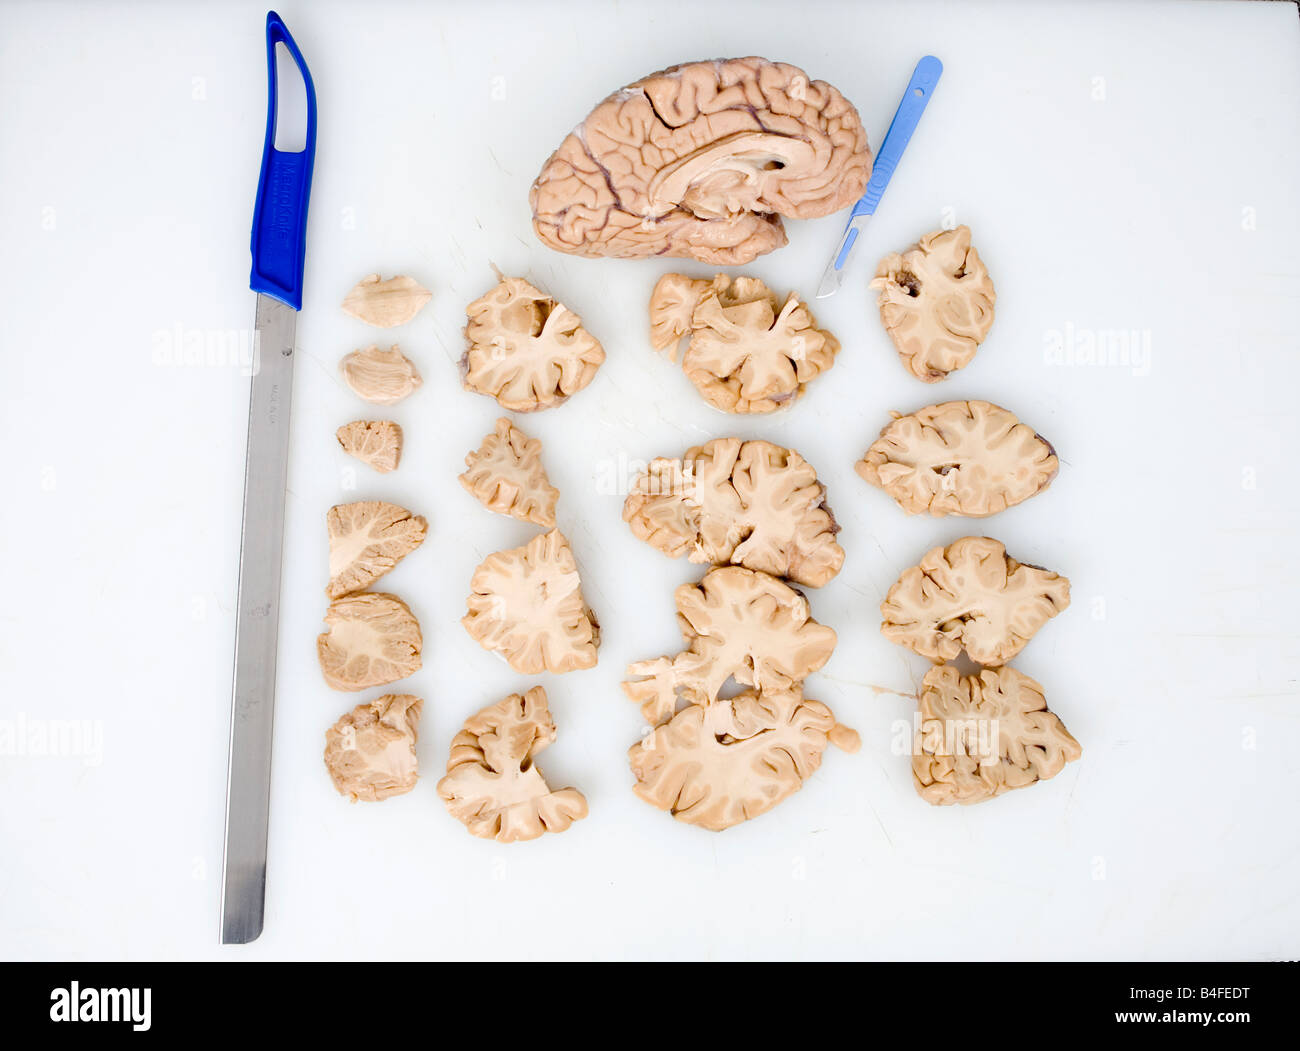 Brain Sections Stockfotos & Brain Sections Bilder - Alamy